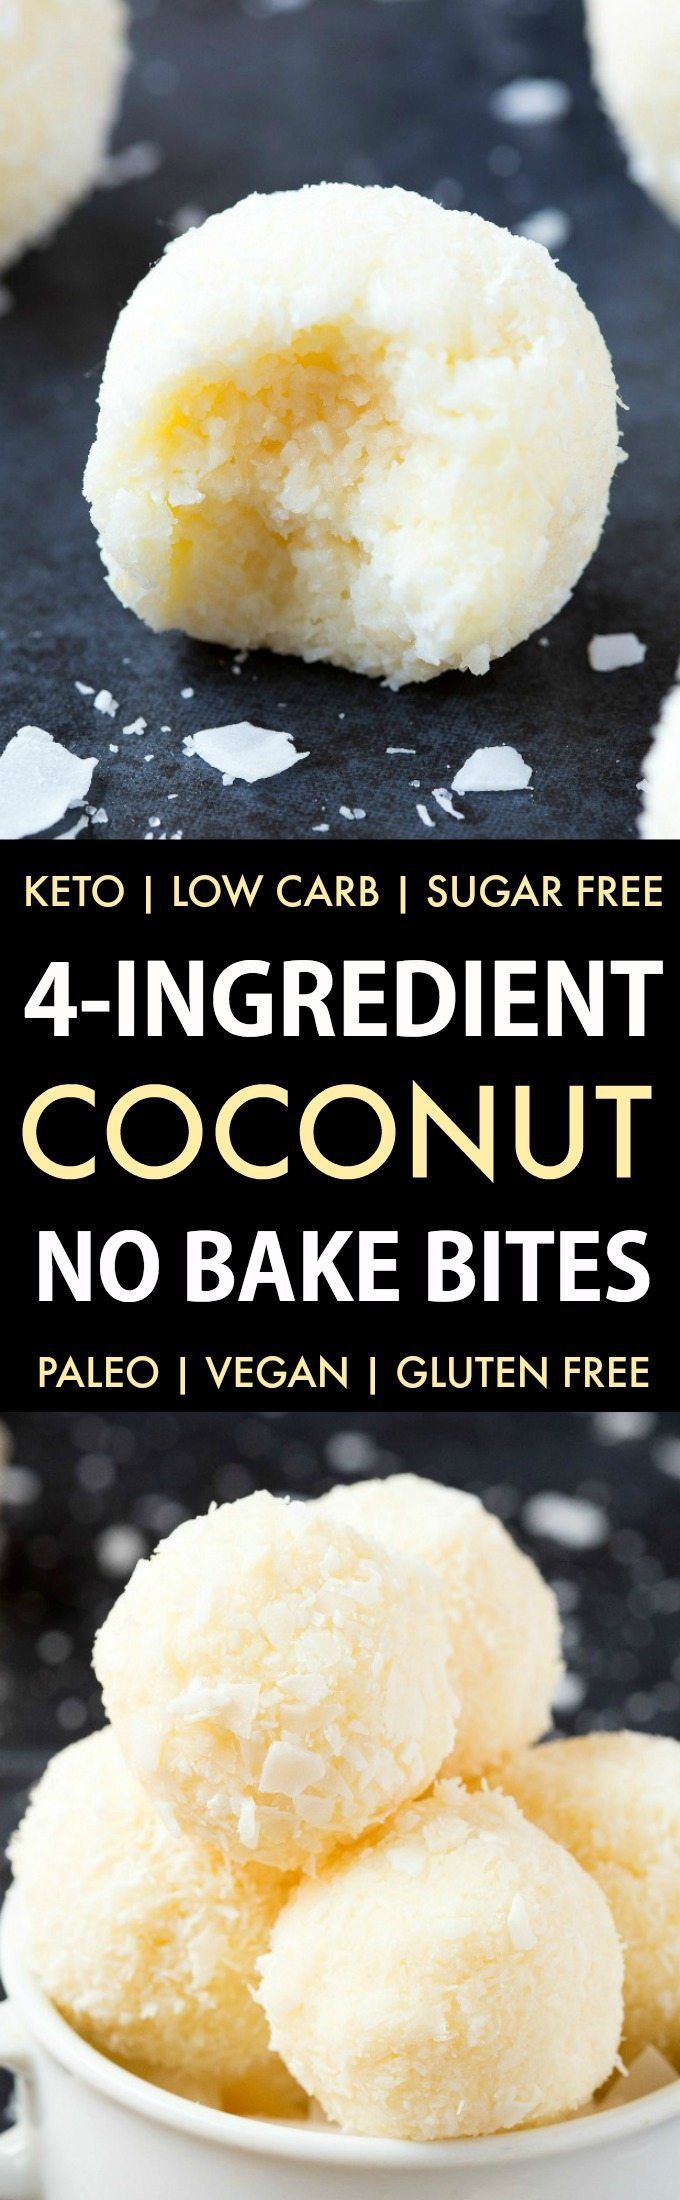 Easy and healthy no bake coconut bites made without condensed milk and needing just 4 ingredients. Made with coconut and almond flour, these paleo and vegan snacks take less than 5 minutes to whip up! Keto, Sugar free, Low Carb.